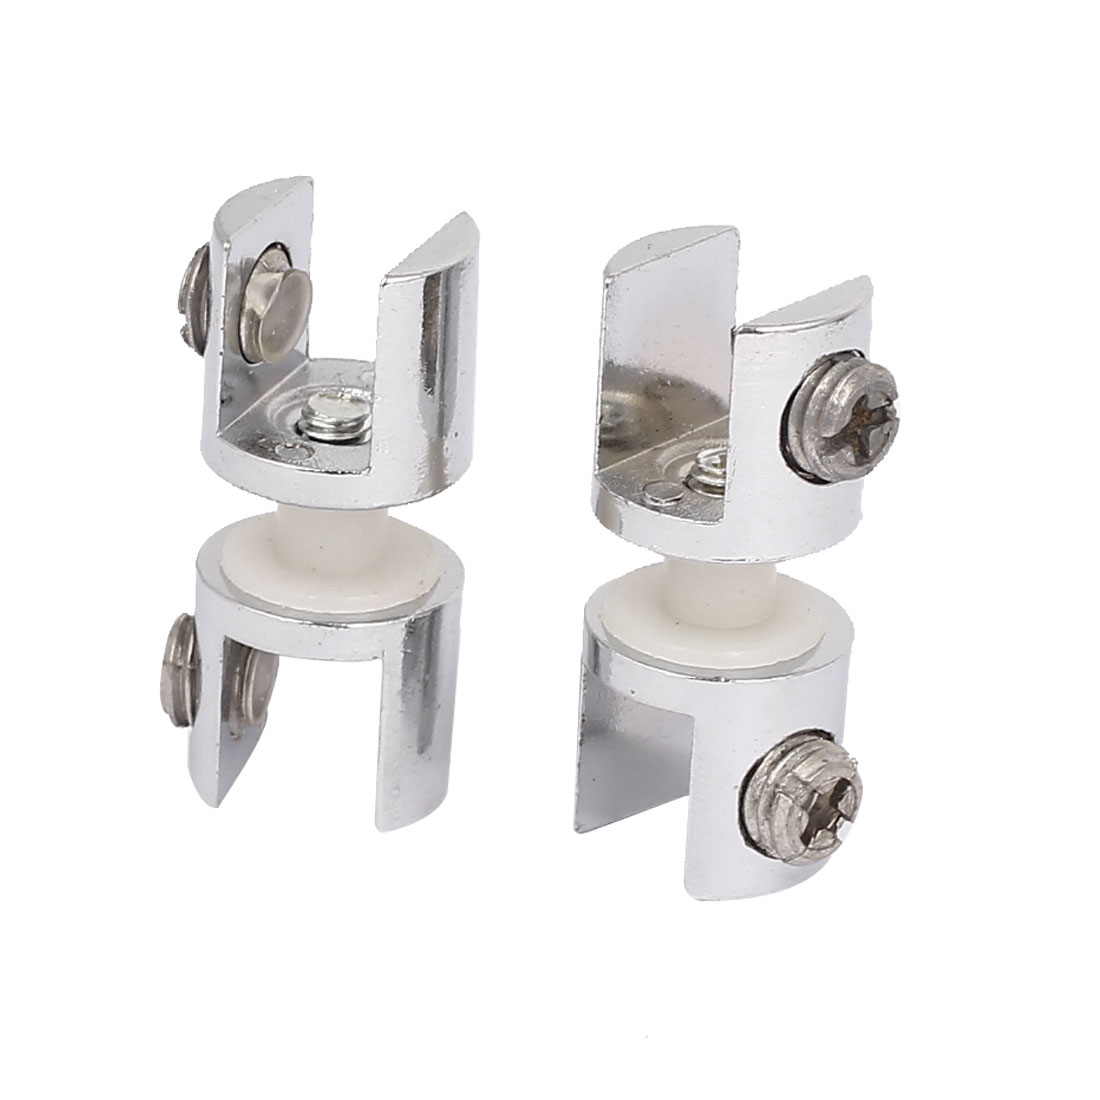 Zinc Alloy 12mm Thickness Window Glass Shelf Clip Clamp Support Bracket 2pcs